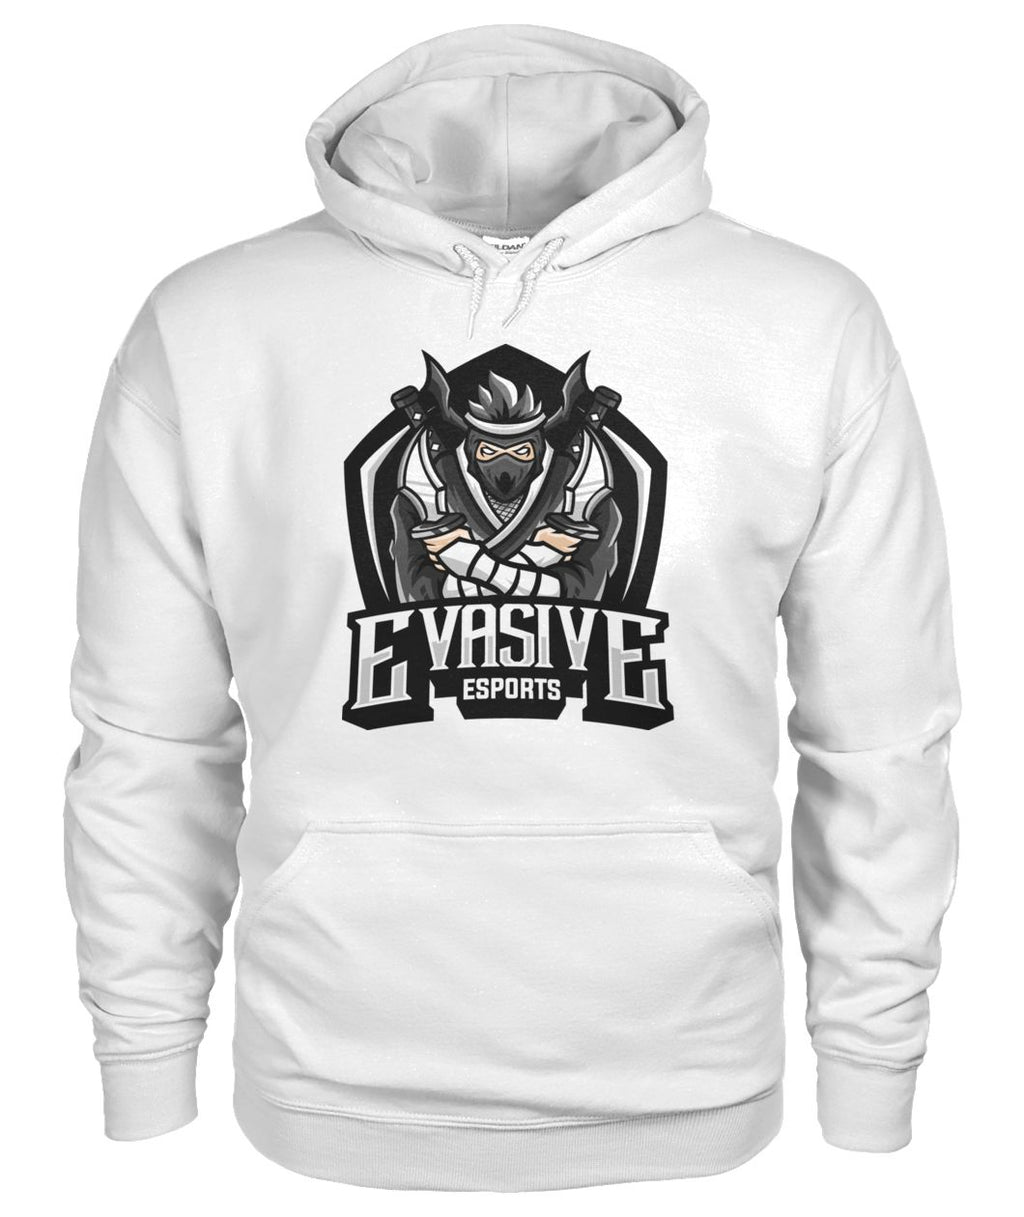 Evasive Esports Mascot Hoodie (3 Color Options)